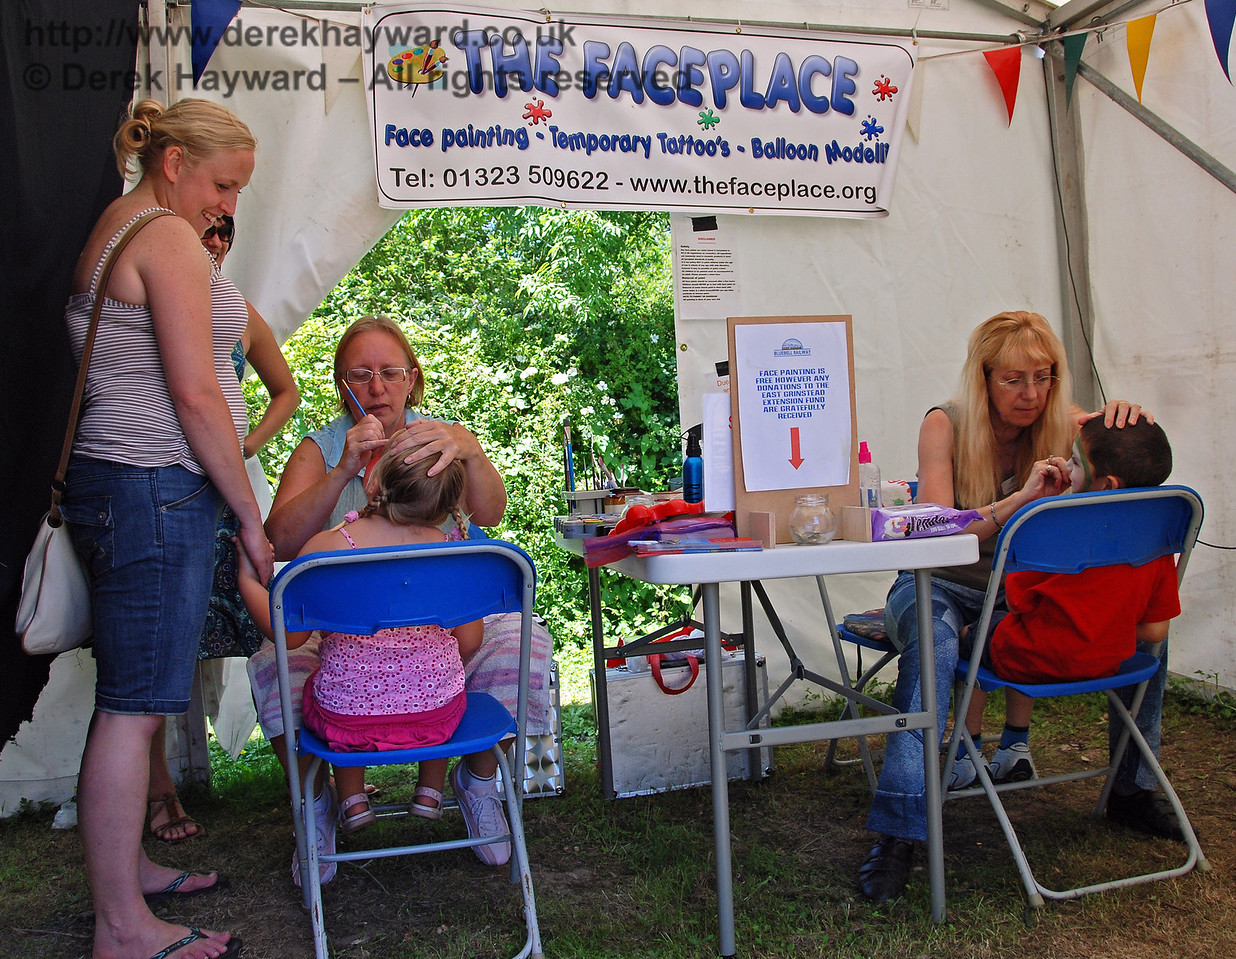 The face painting team had a constant queue, and were turning out designs left right and centre. Horsted Keynes 27.06.2009